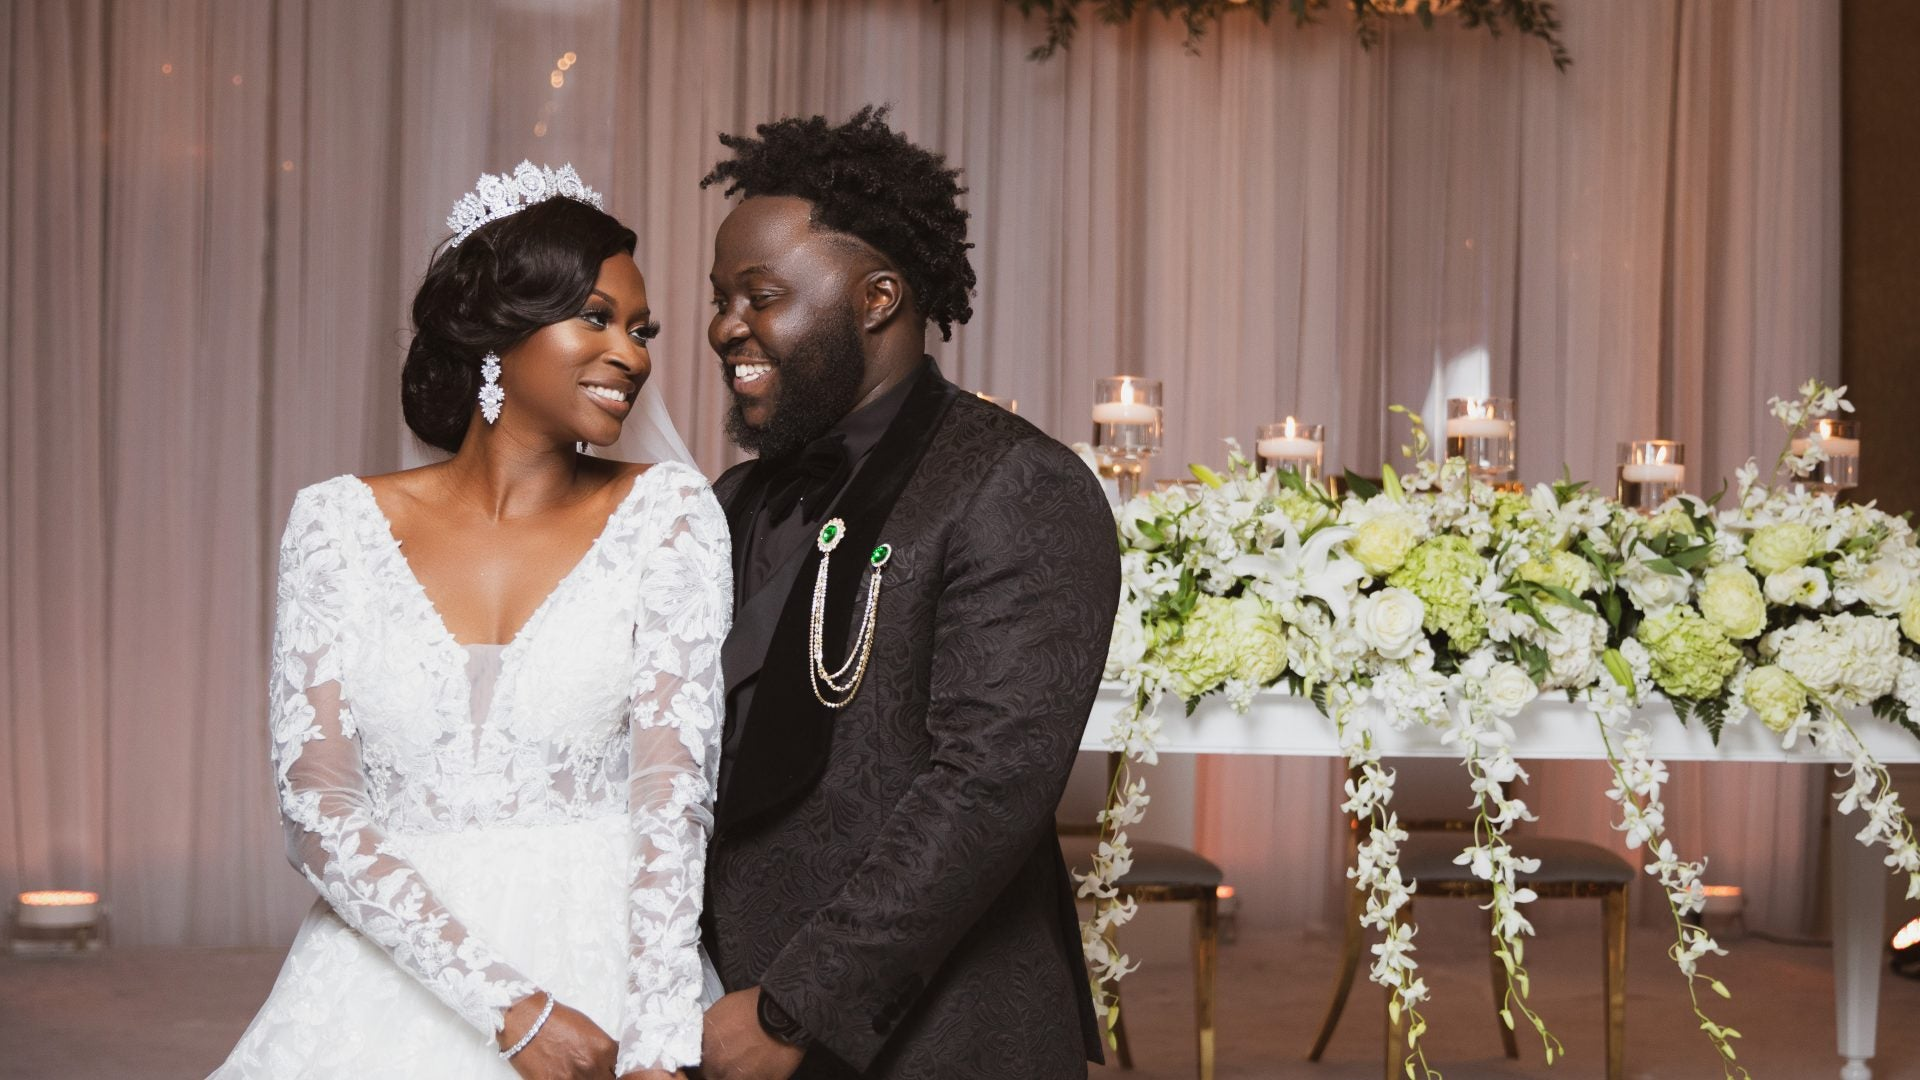 Lucile and Dorson's Romantic Winter Wedding